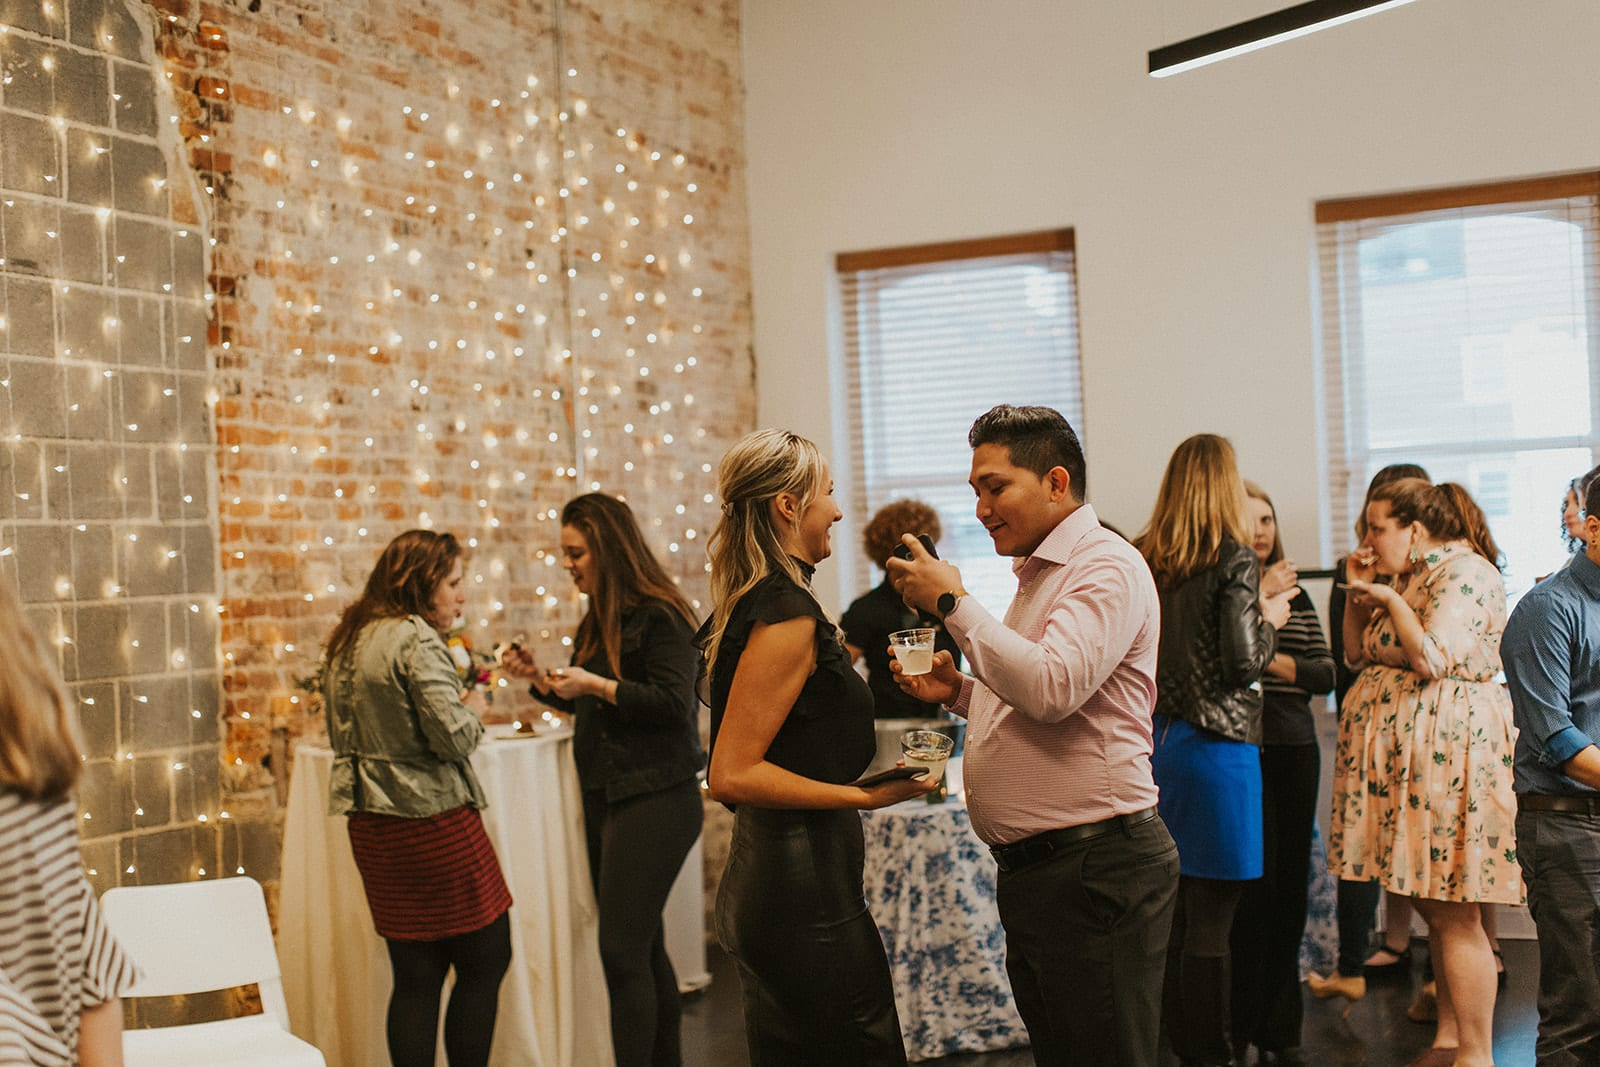 Shelly Pate Photography photographed the District Bliss Vendor Social, a light-hearted networking event, at The Gallery at Elevate in Washington, DC in March 2019